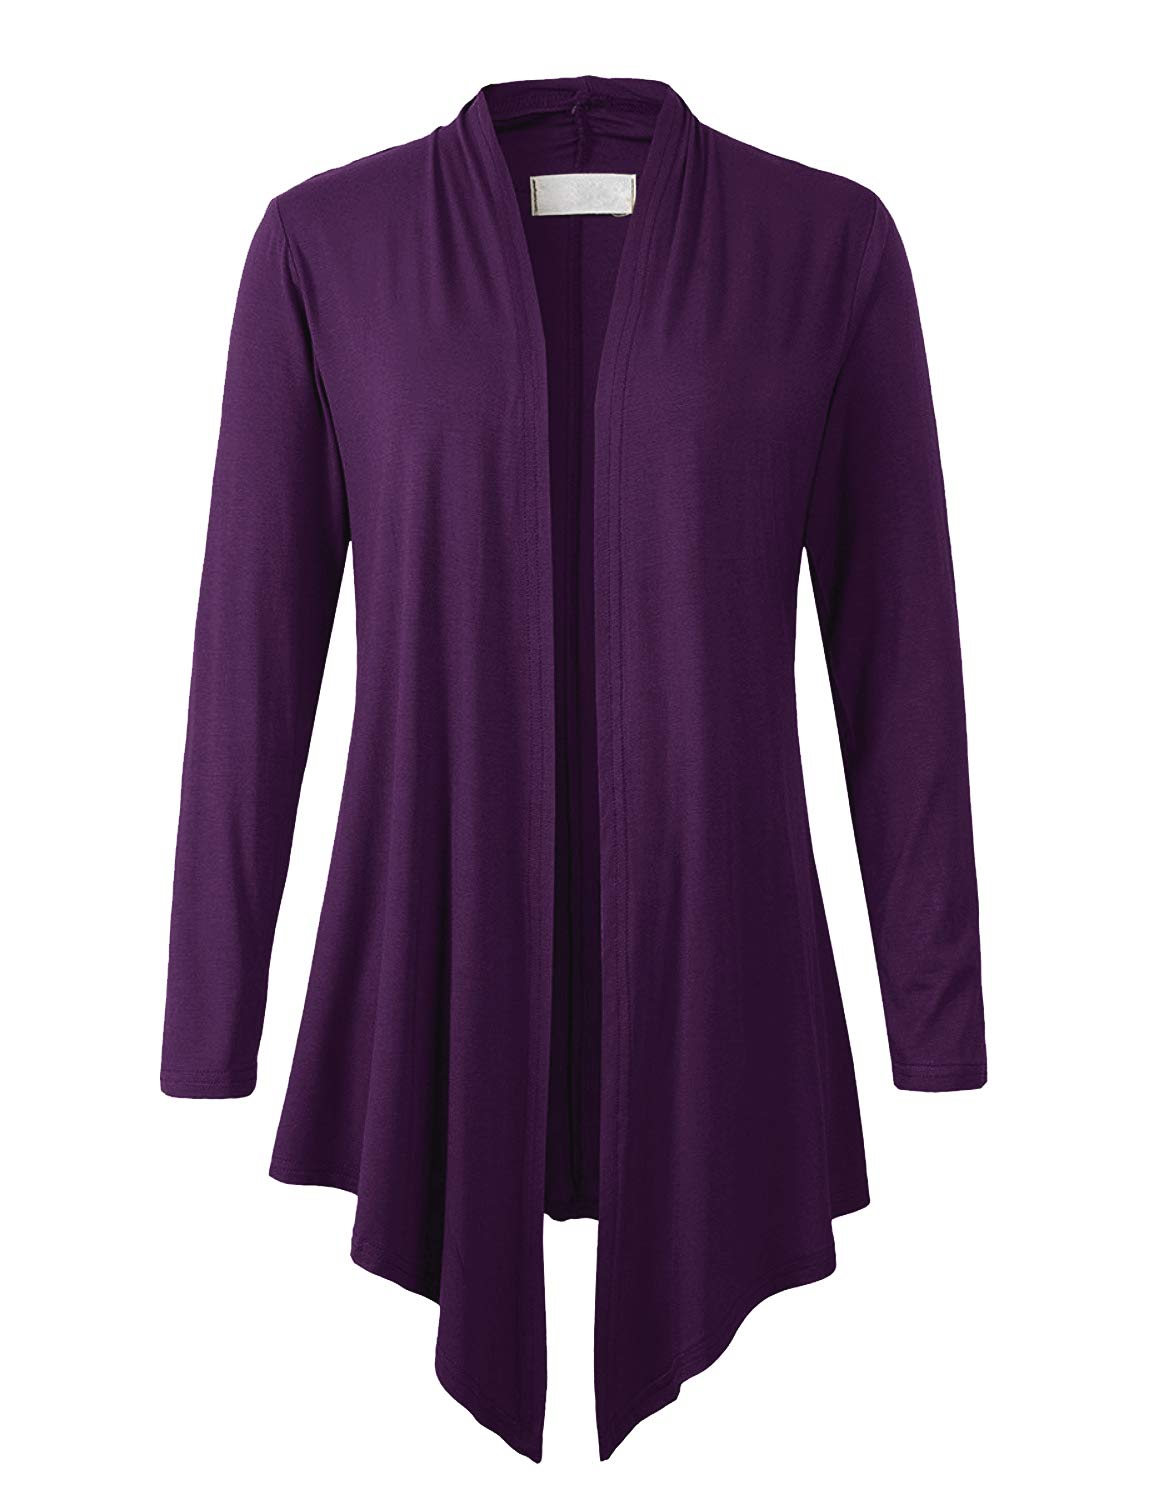 Eanklosco Women Open Front Cardigan Plus Size Drape Long Sleeve Coat (Purple, XXL)